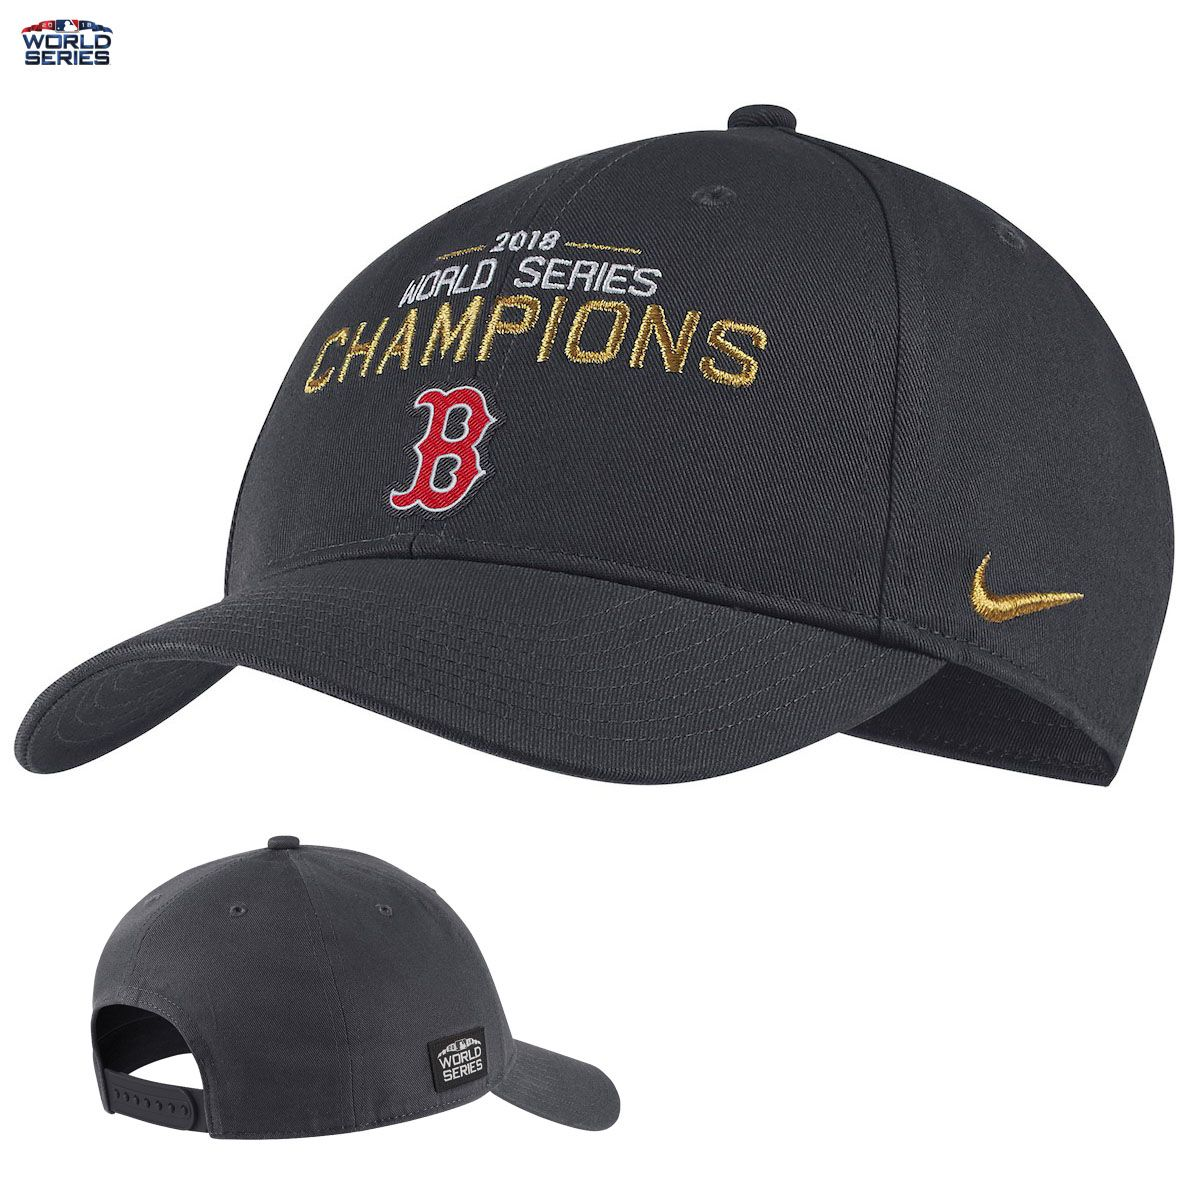 new style ab9f2 2a7bf Boston Red Sox 2018 World Series Champions Nike Adjustable ...